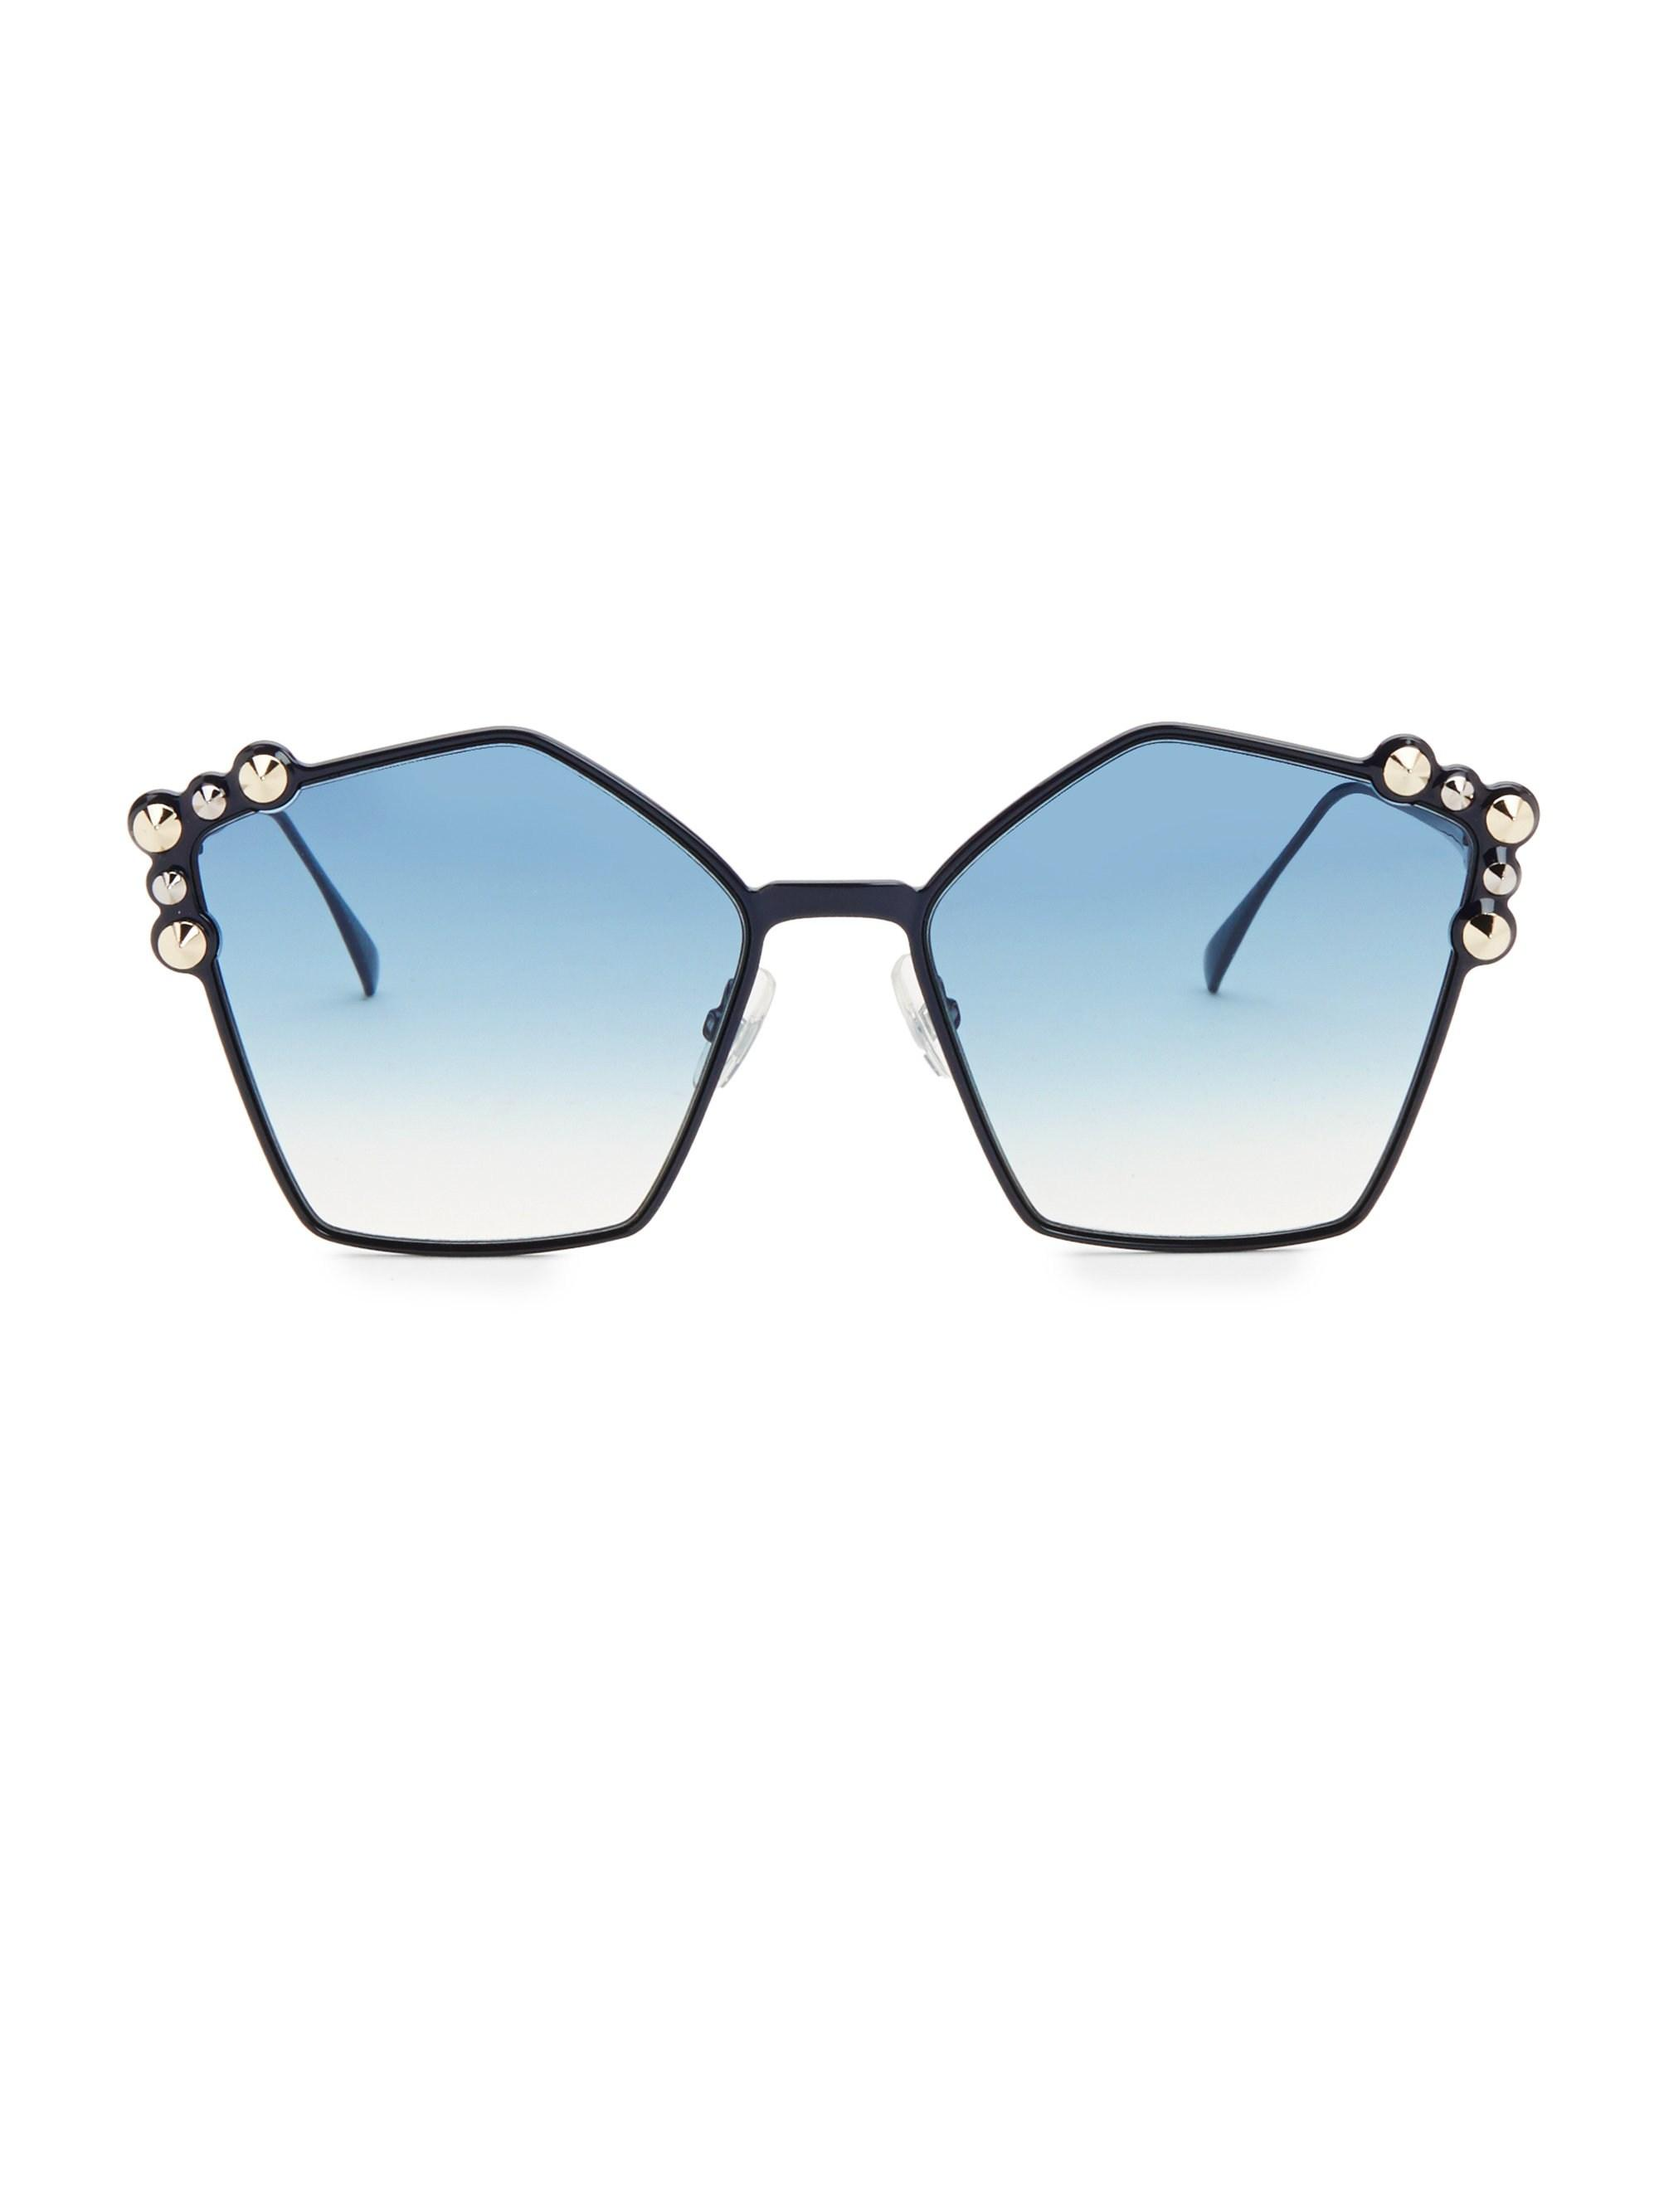 d50688f478 Lyst - Fendi 57mm Embellished Pentagon Sunglasses in Blue